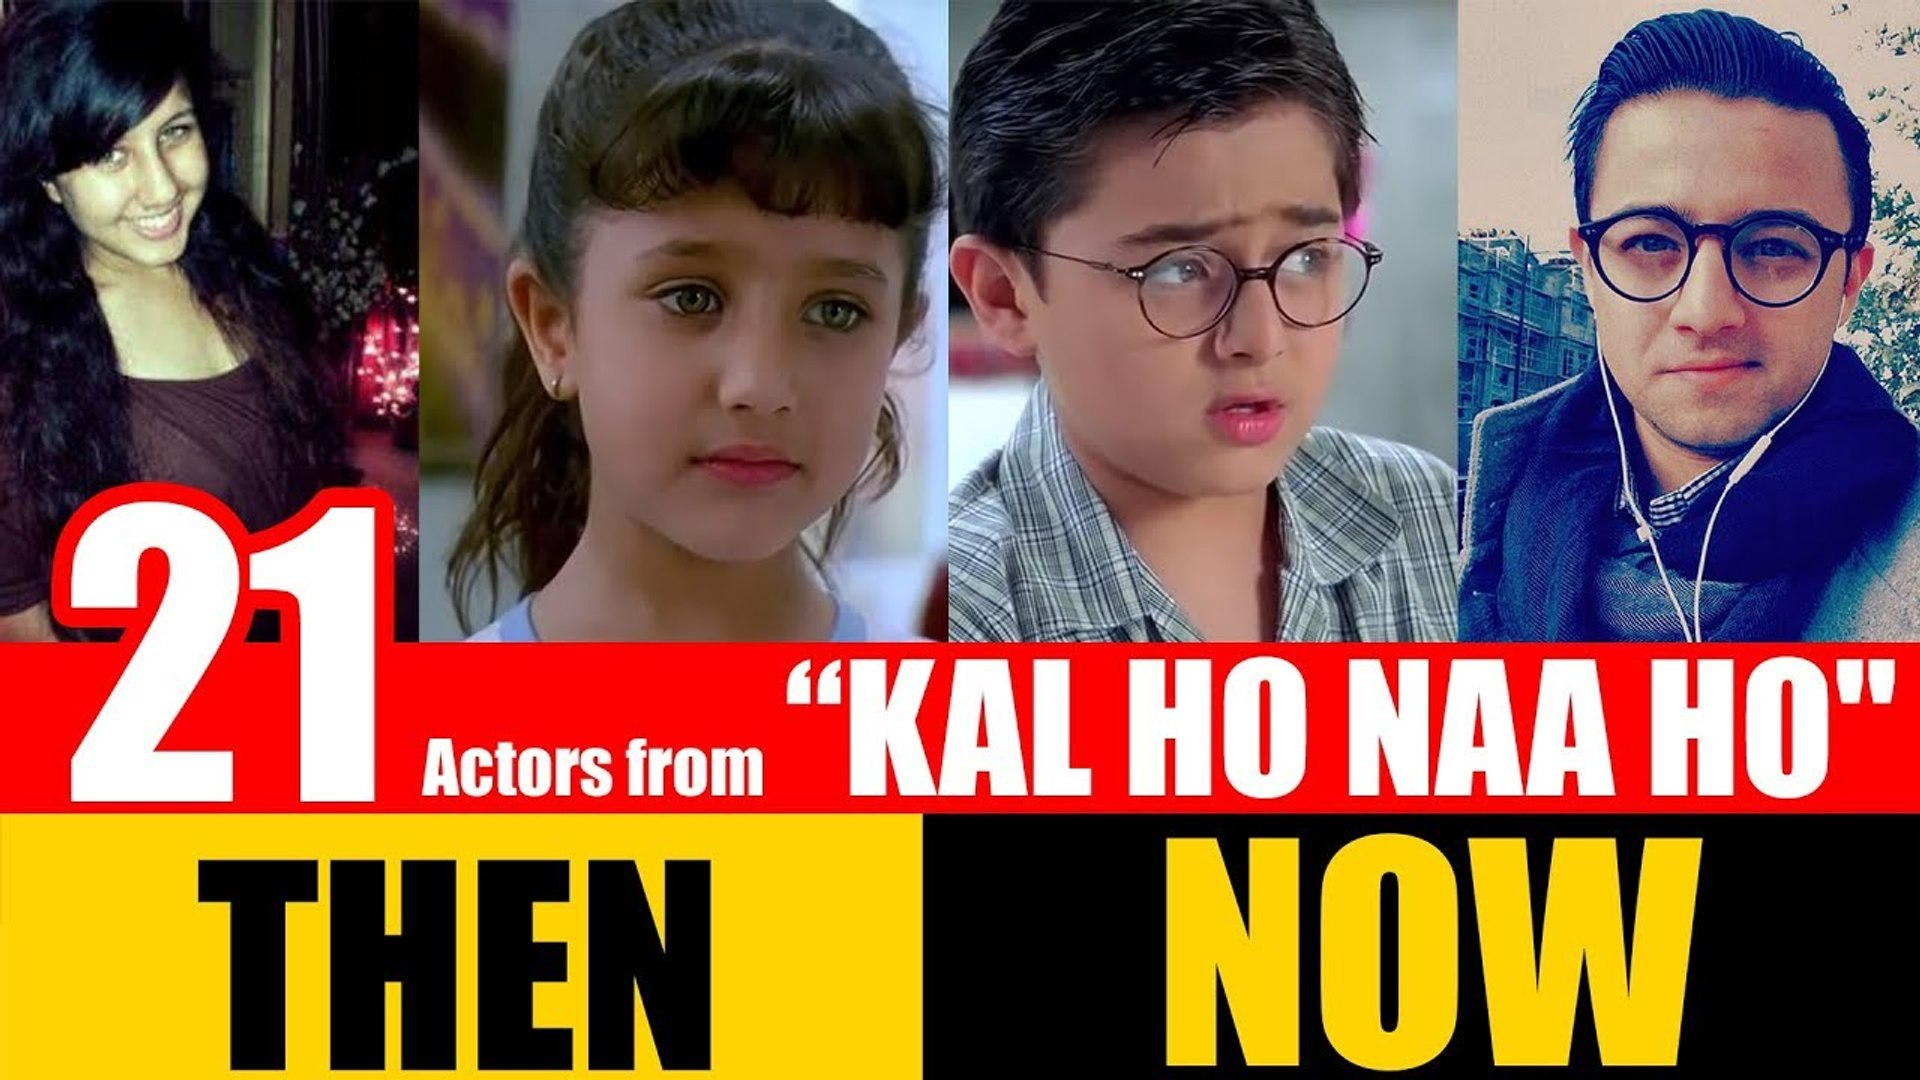 21 Bollywood Actors From Kal Ho Naa Ho 2003 Then And Now Video Dailymotion The musical numbers are beautiful, sometimes memorably so, with the exception of the mostly vulgar club nirvana. 21 bollywood actors from kal ho naa ho 2003 then and now